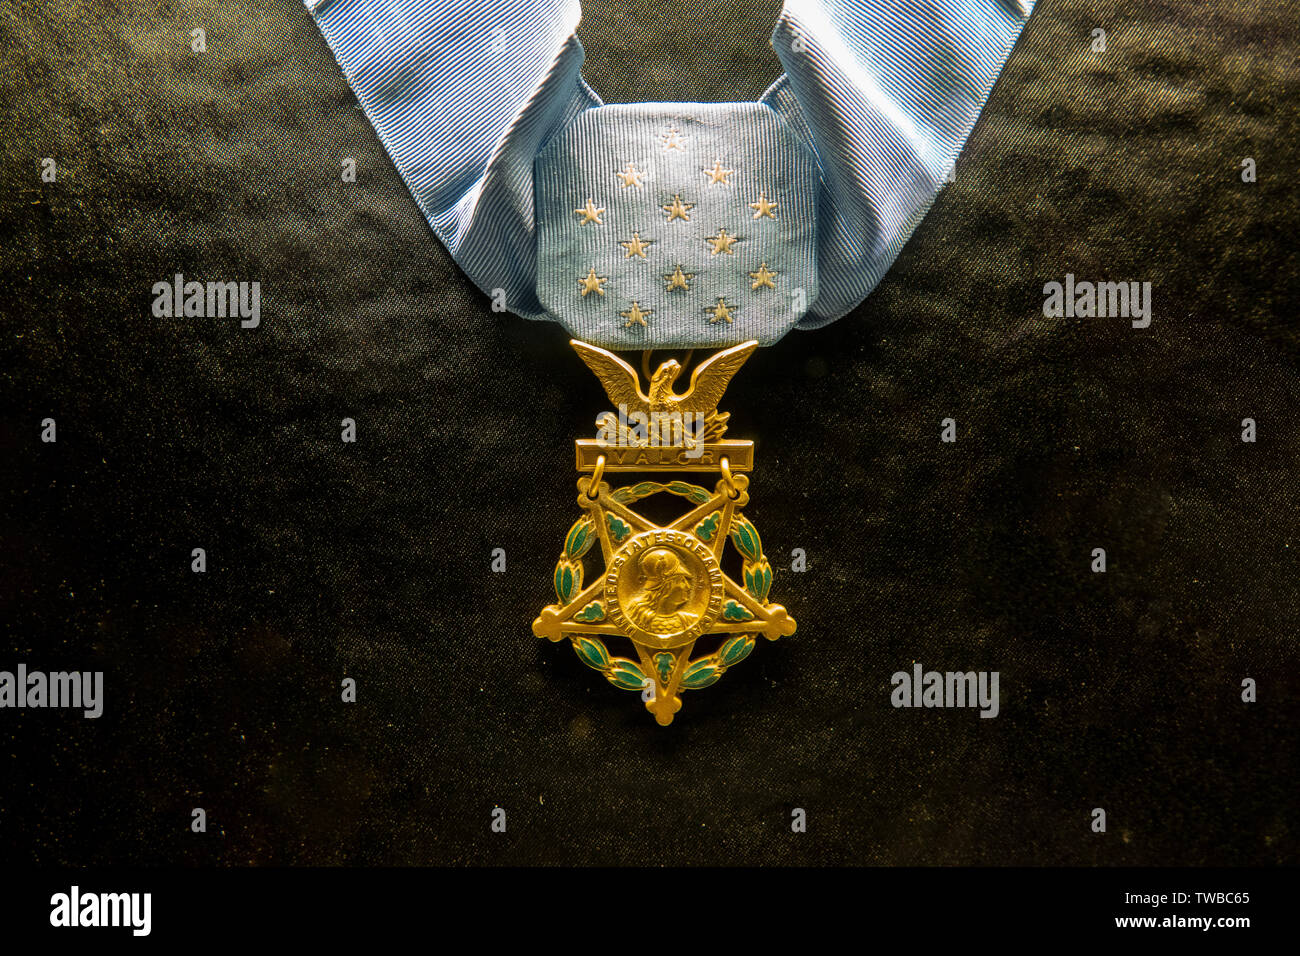 usa-united-states-medal-of-honor-war-hero-army-TWBC65.jpg